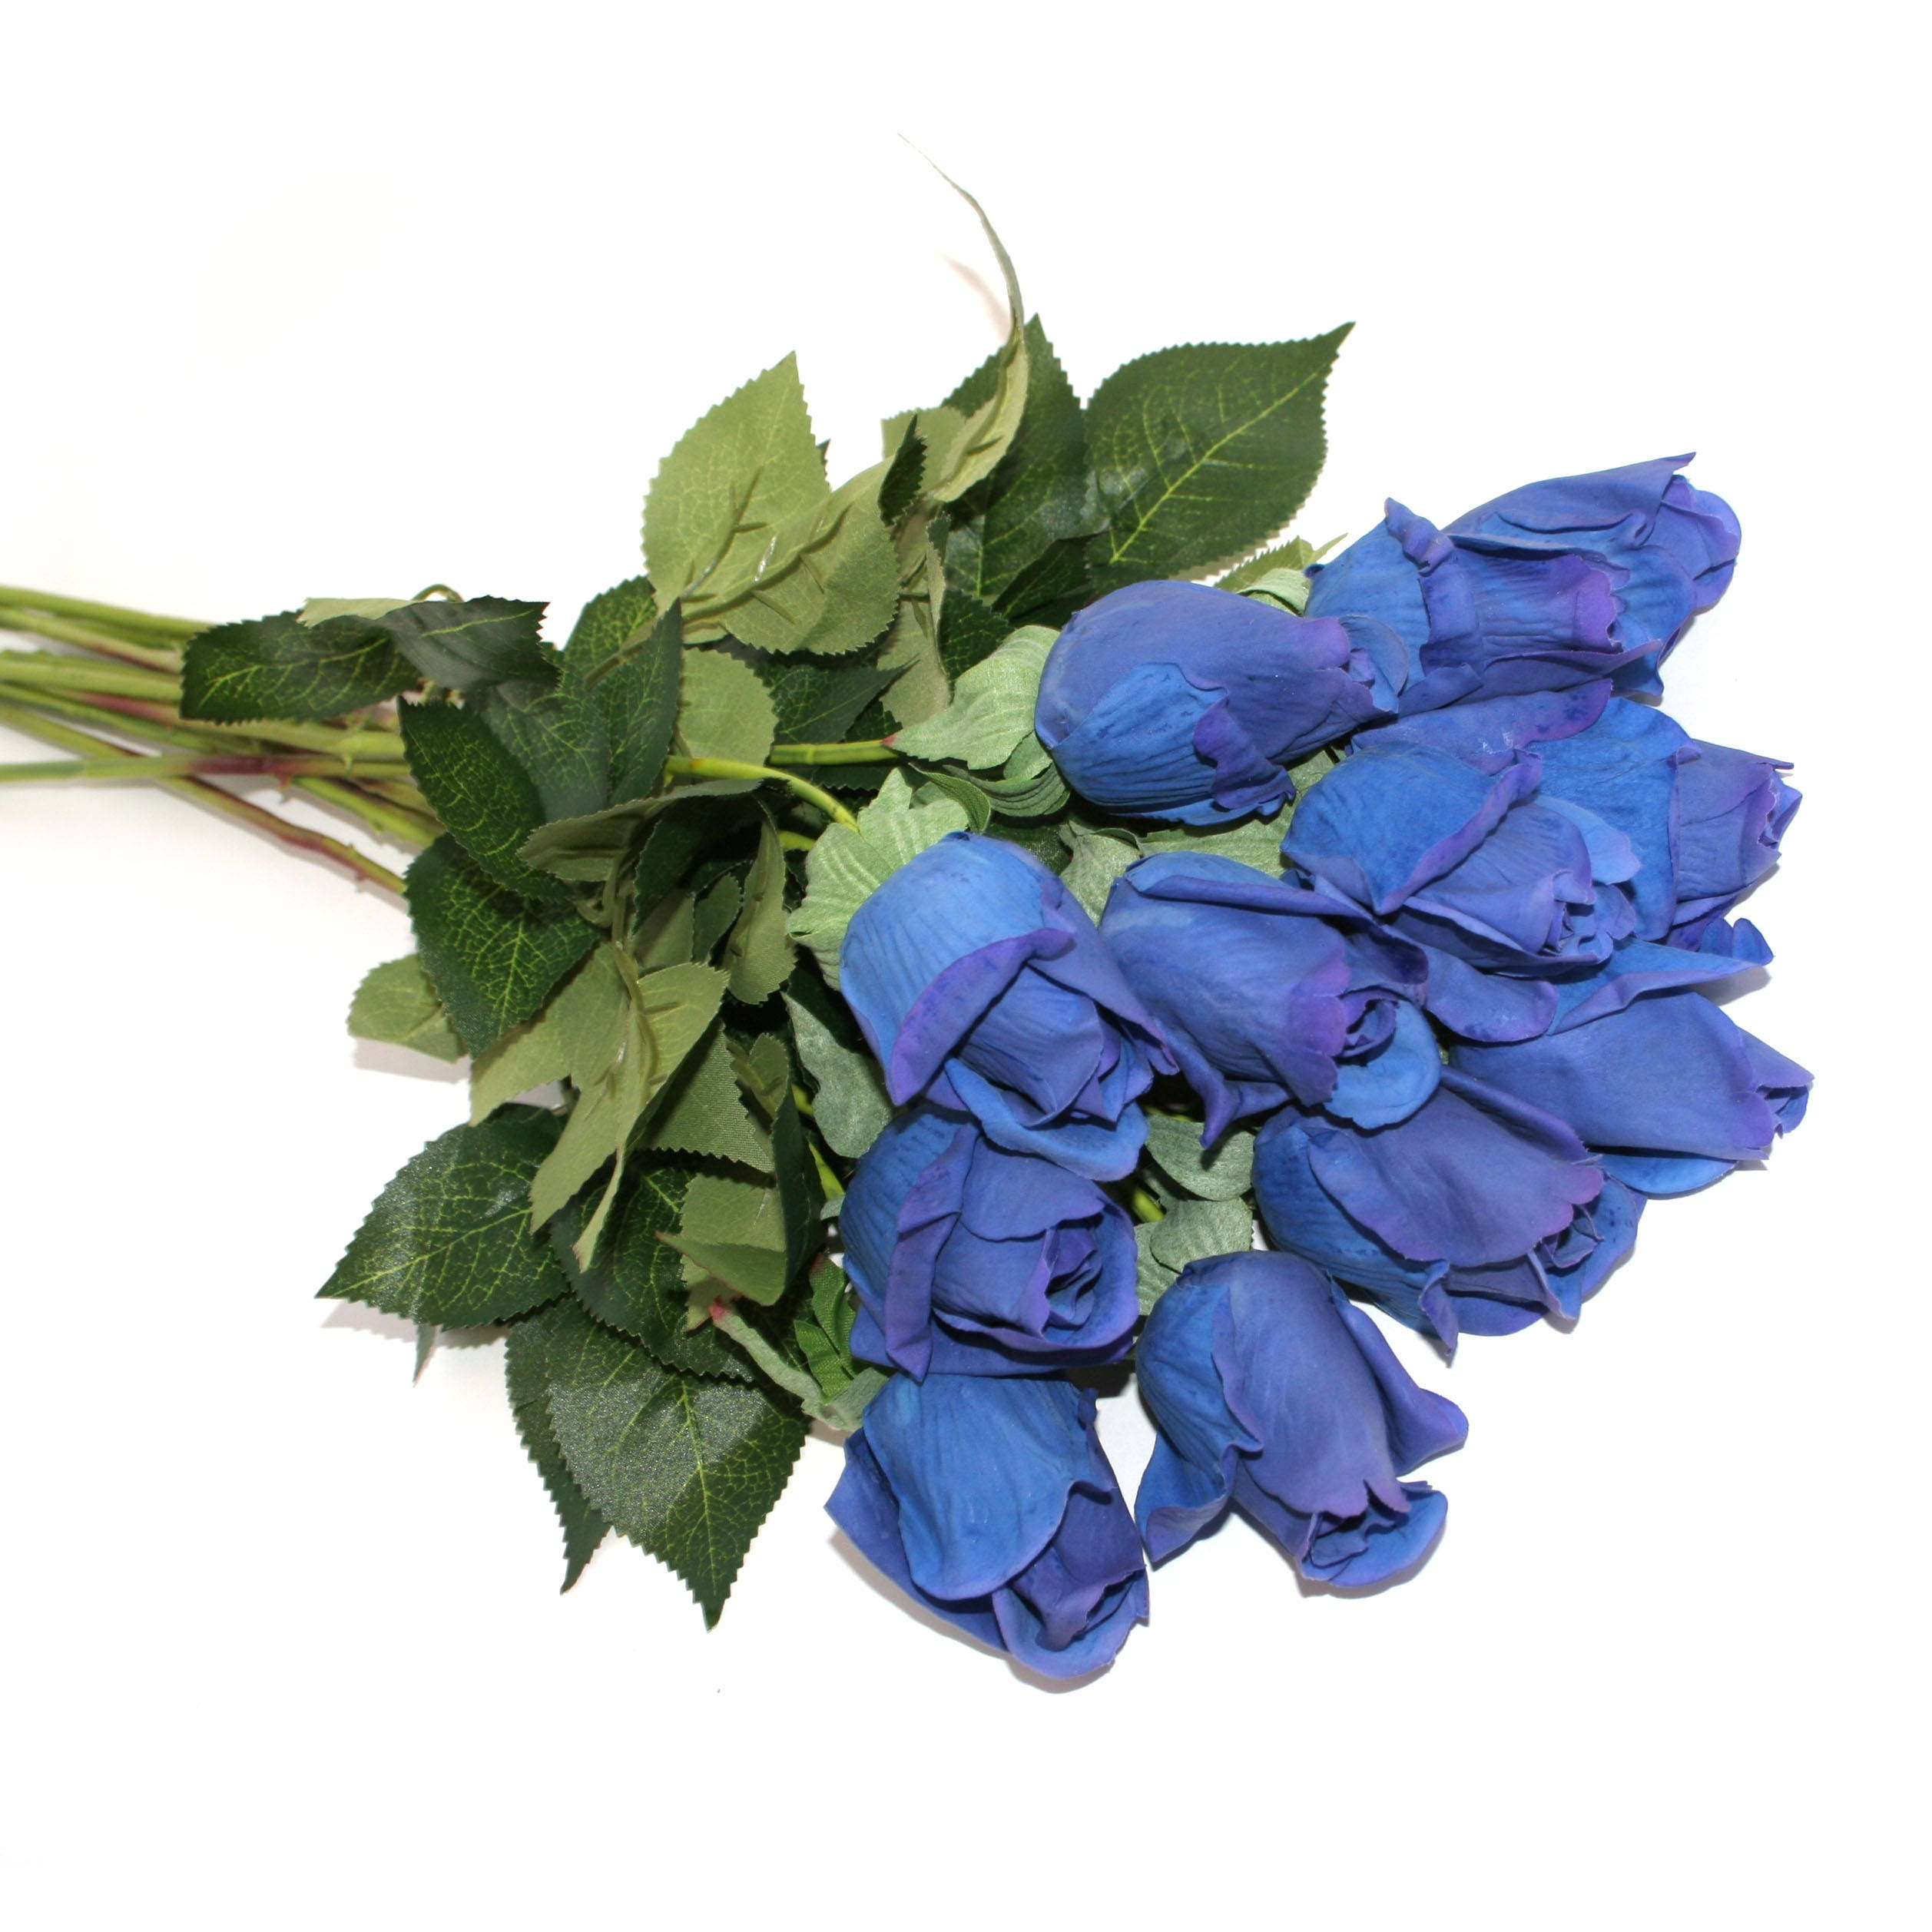 12 Long Stem Gorgeous Real Touch Royal Or Navy Blue Rose Buds